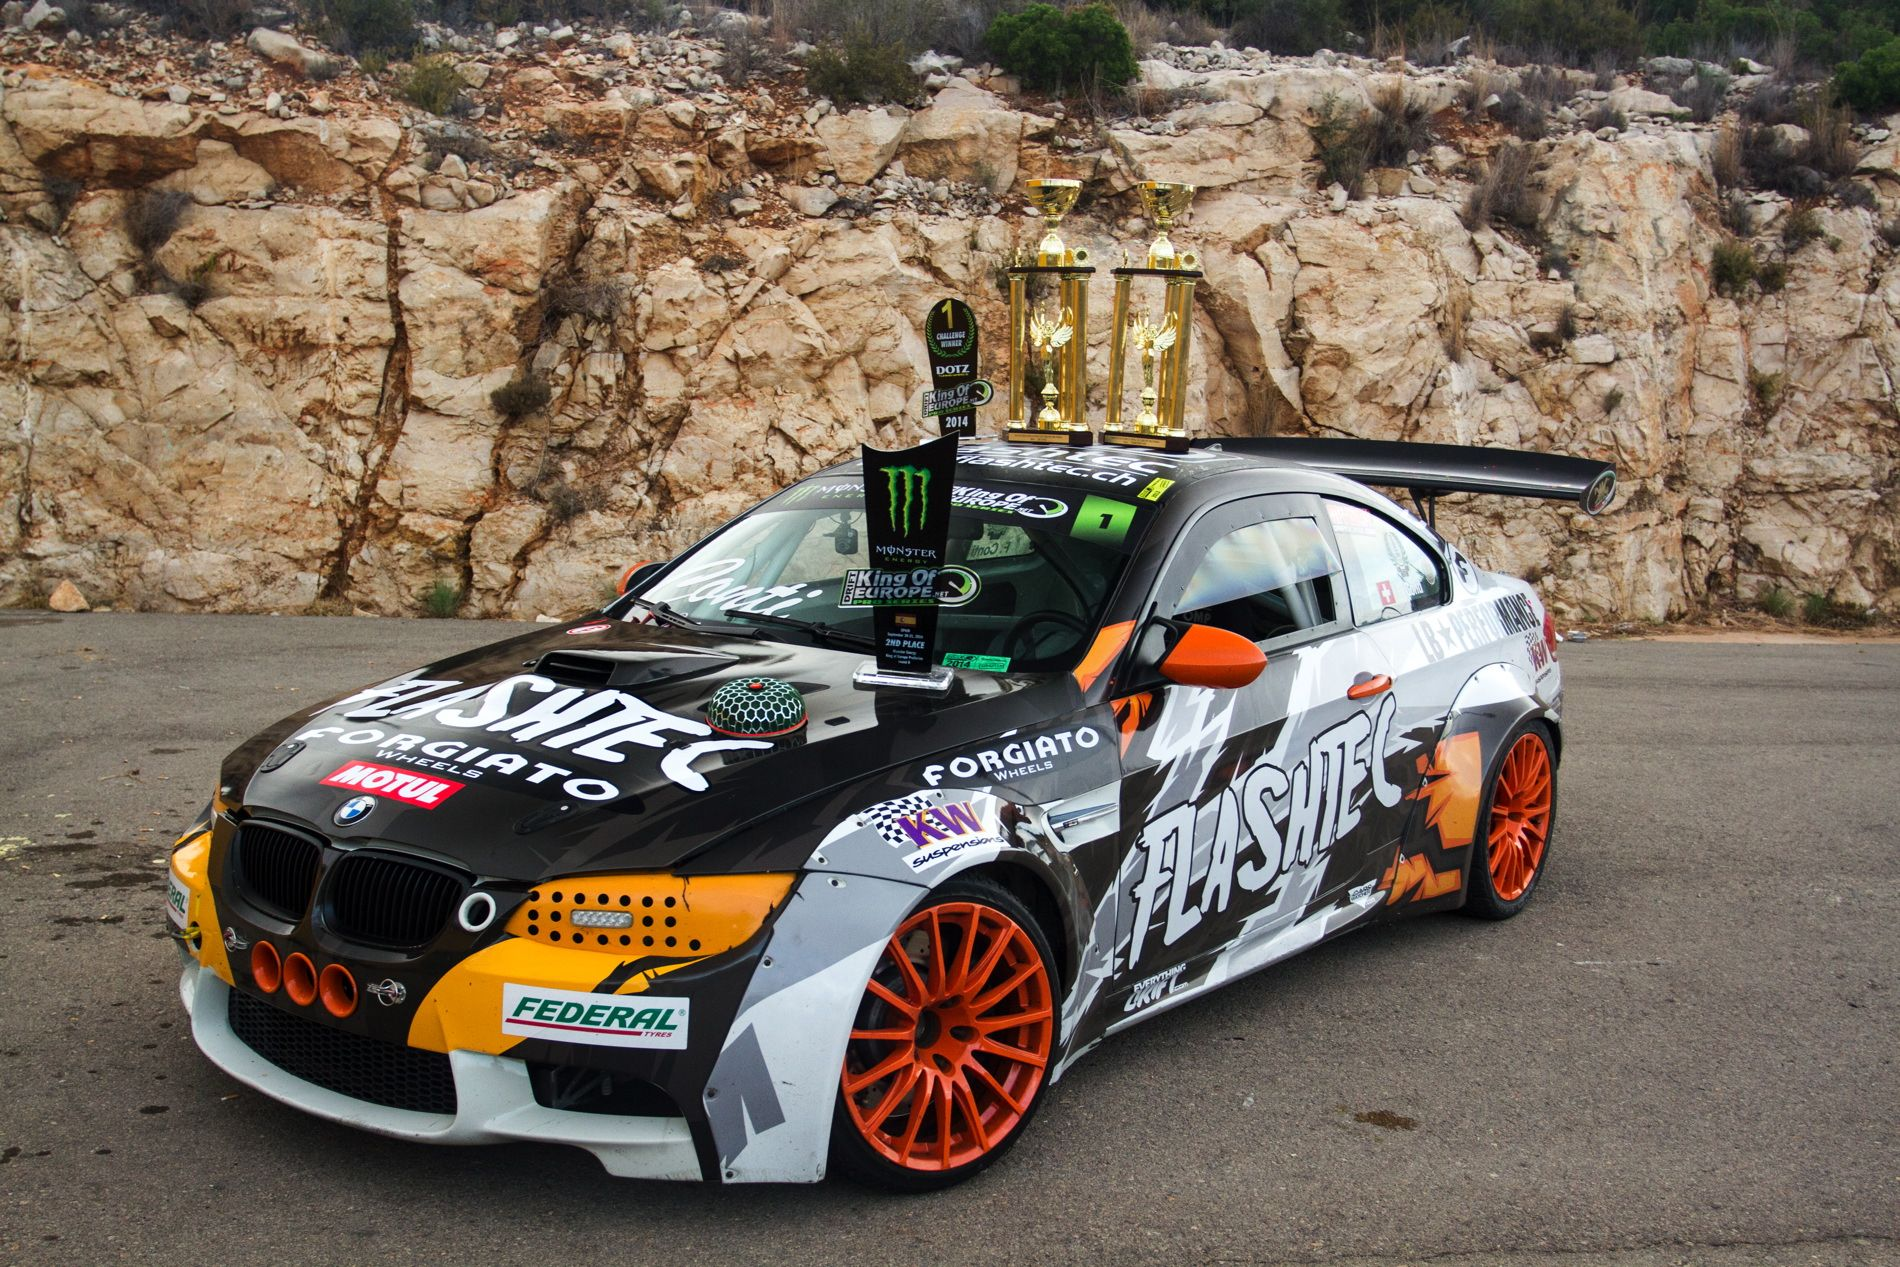 Francesco Conti Bmw Drifting Race Car Wraps Pinterest